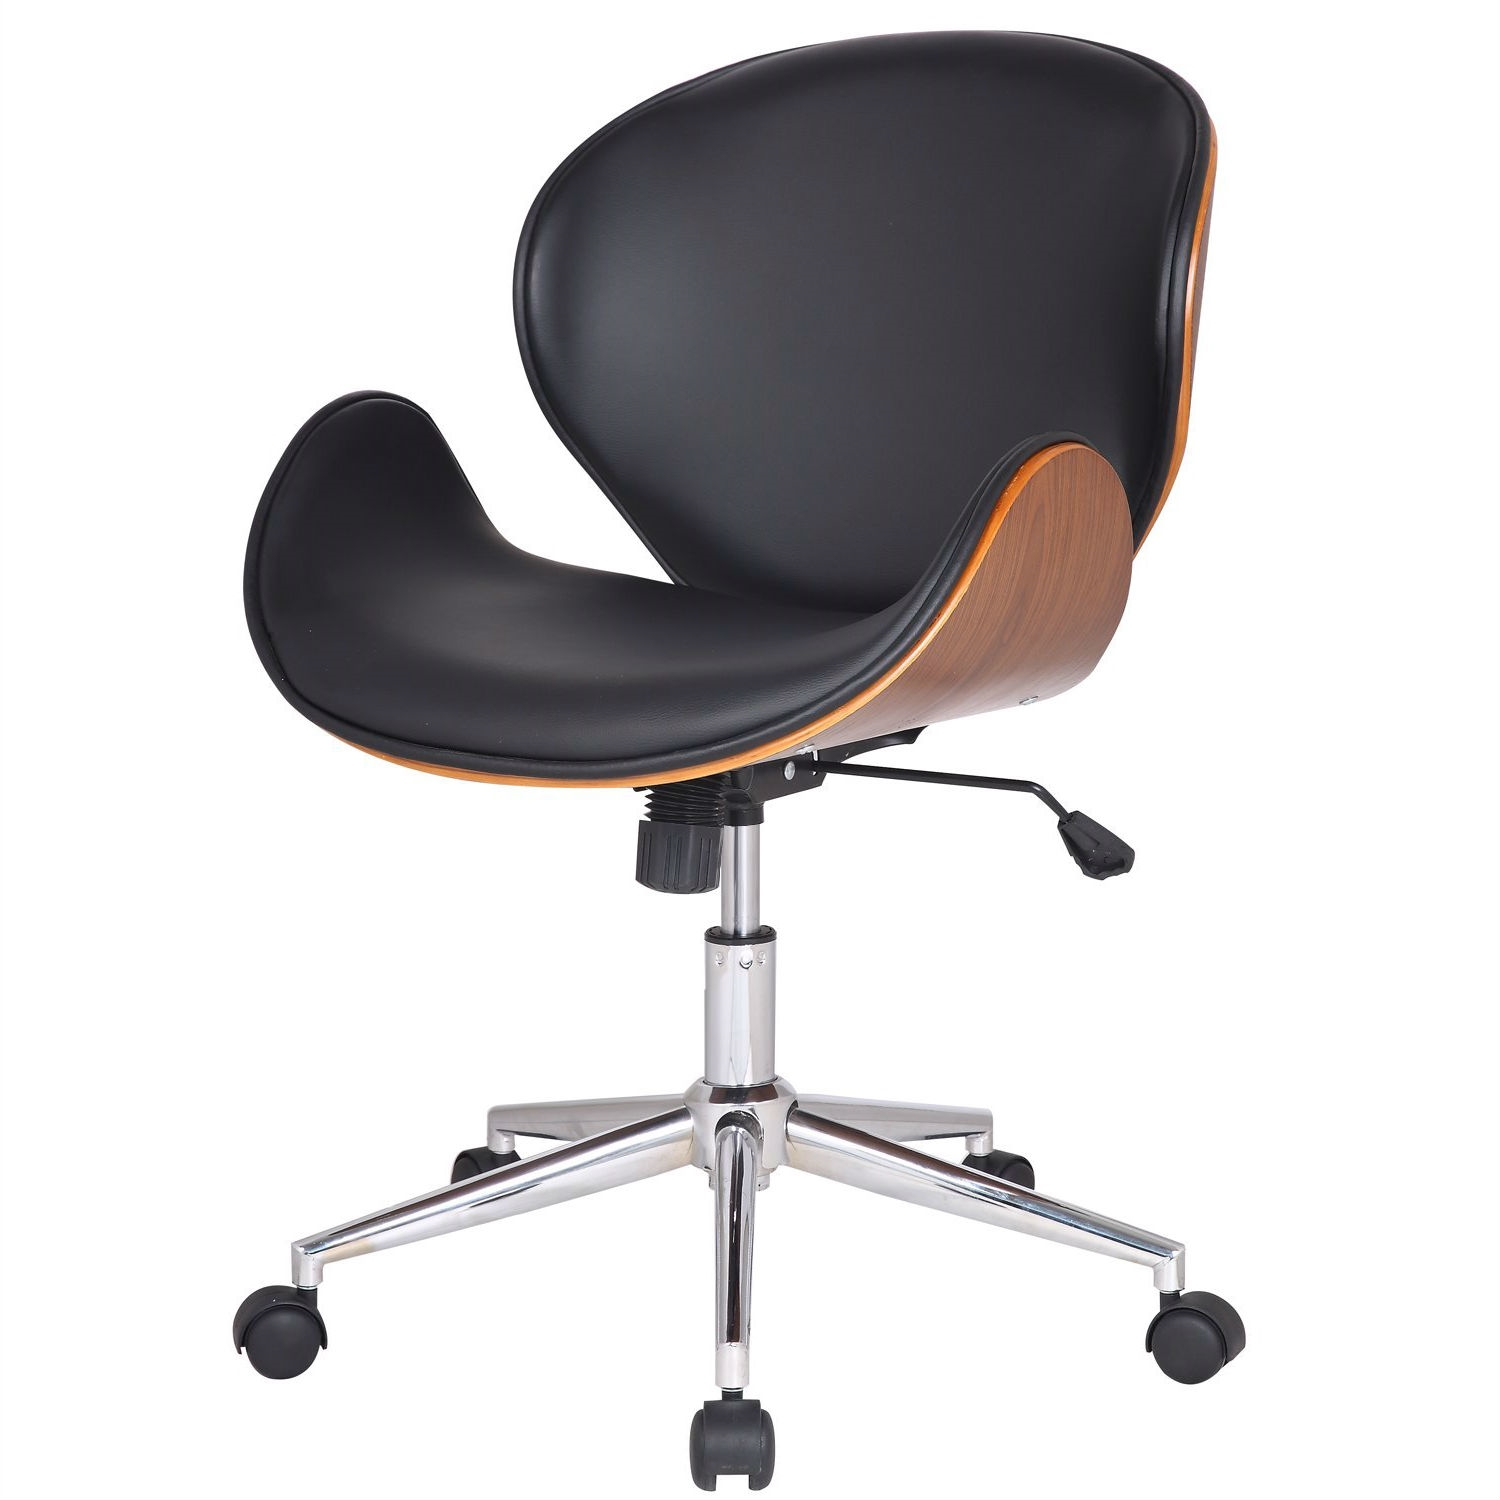 Modern Classic Walnut / Black Faux Leather Office Chair with Curved Seat  sc 1 st  FastFurnishings.com & Modern Classic Walnut / Black Faux Leather Office Chair with Curved ...